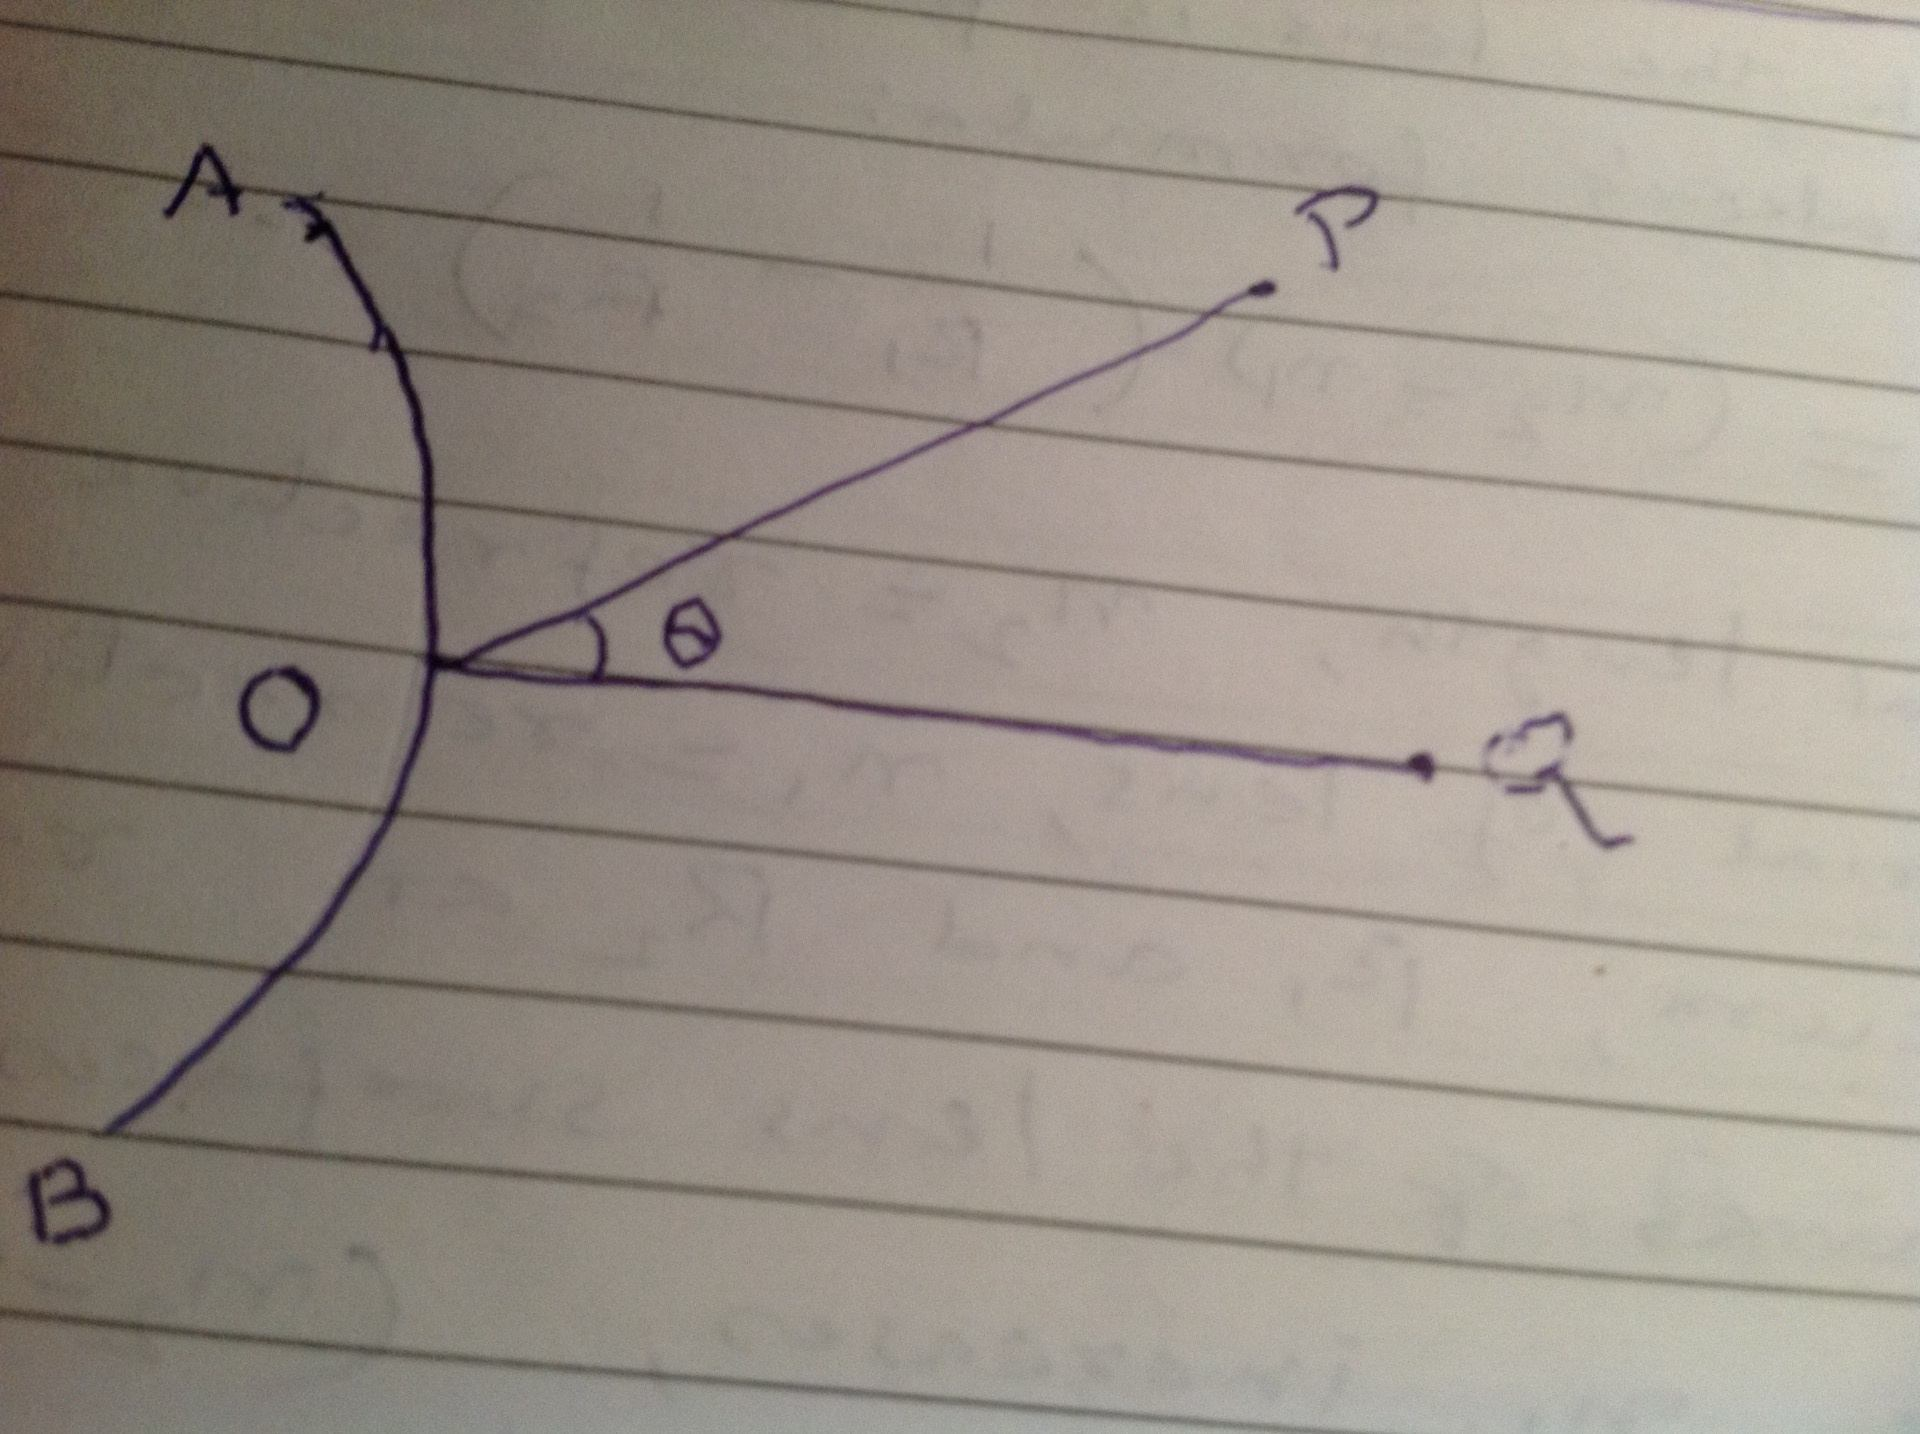 Why is there no backward flow of the energy during the propagation